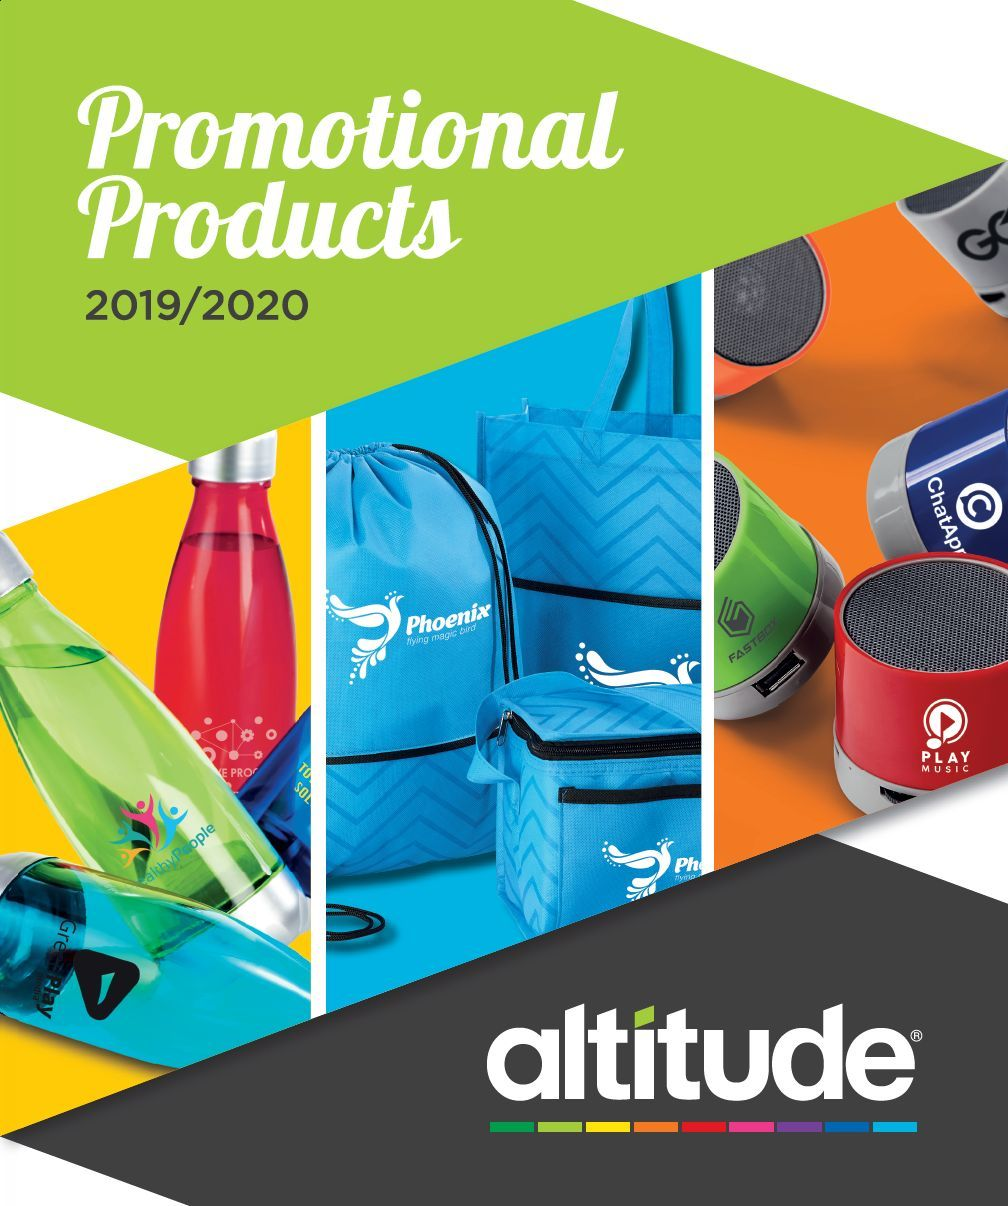 Altitude Promotional Products